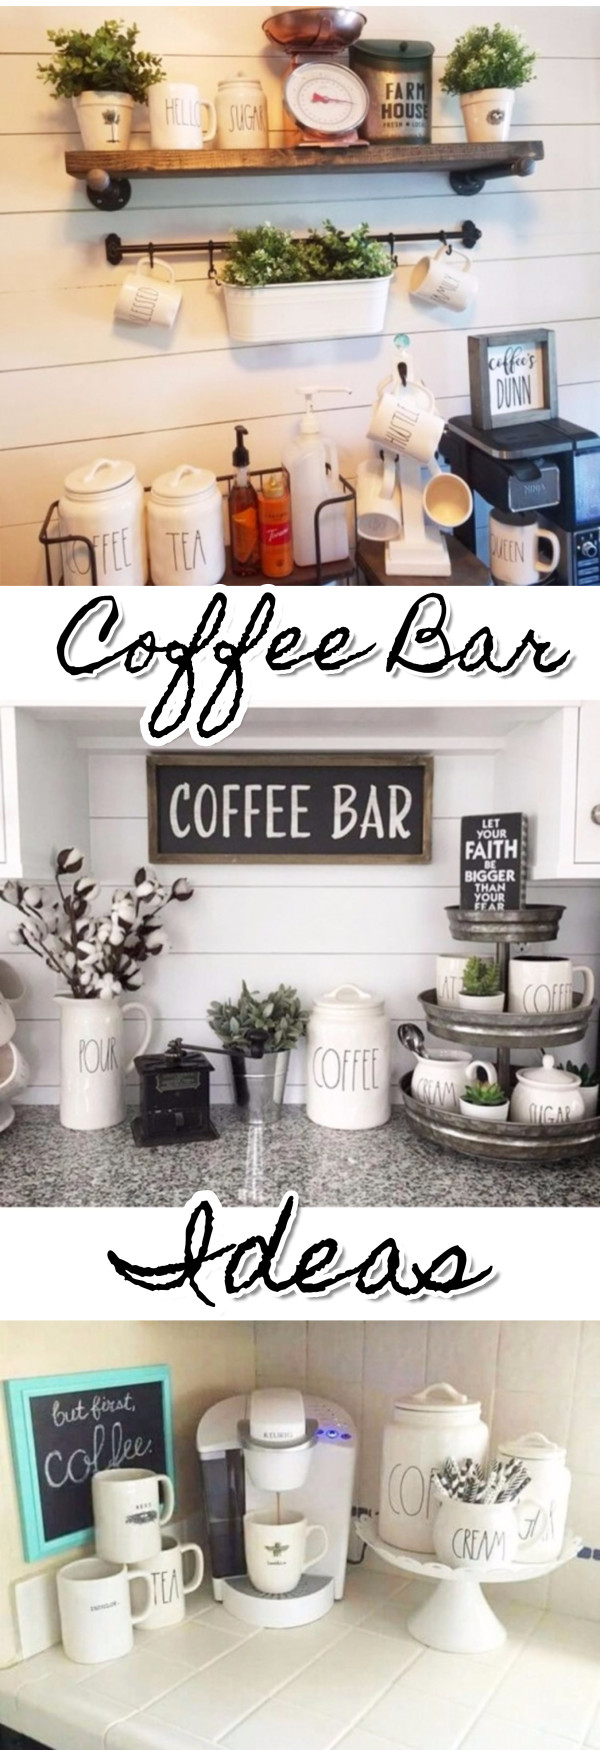 Coffee bar set up and organization ideas